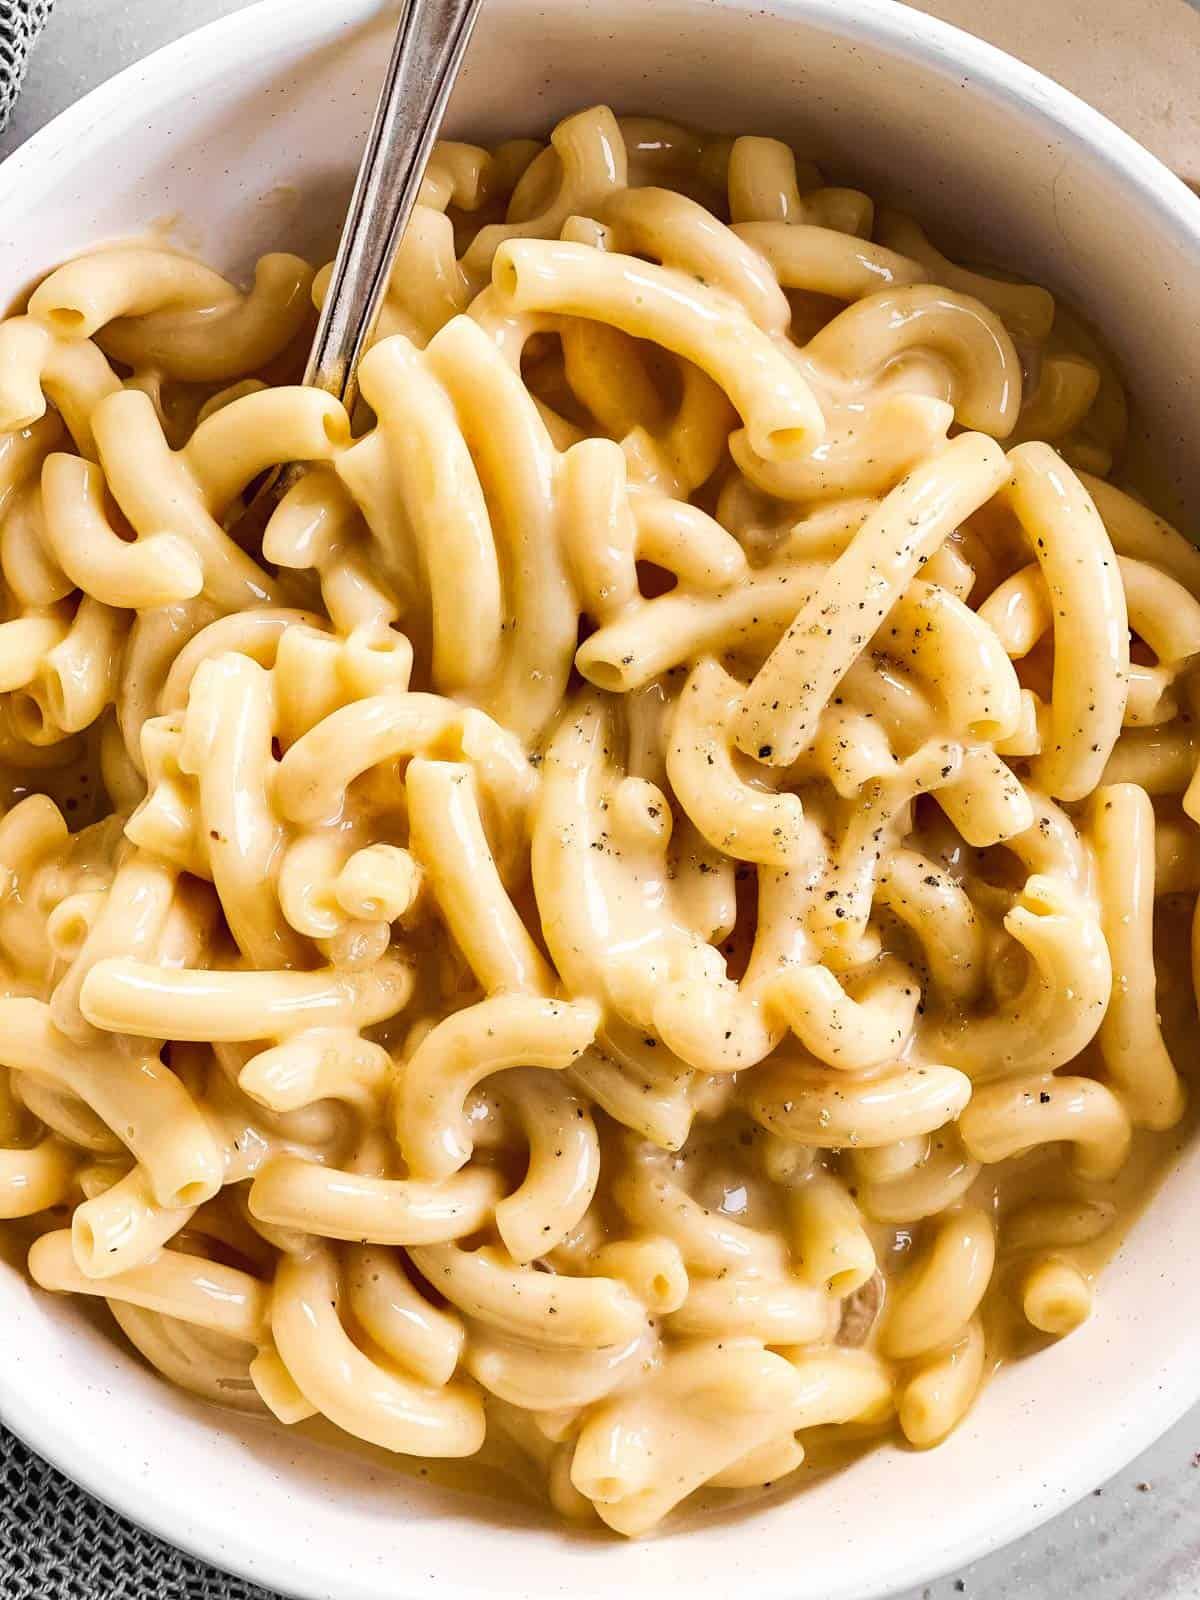 close up photo of Mac and cheese in a white bowl